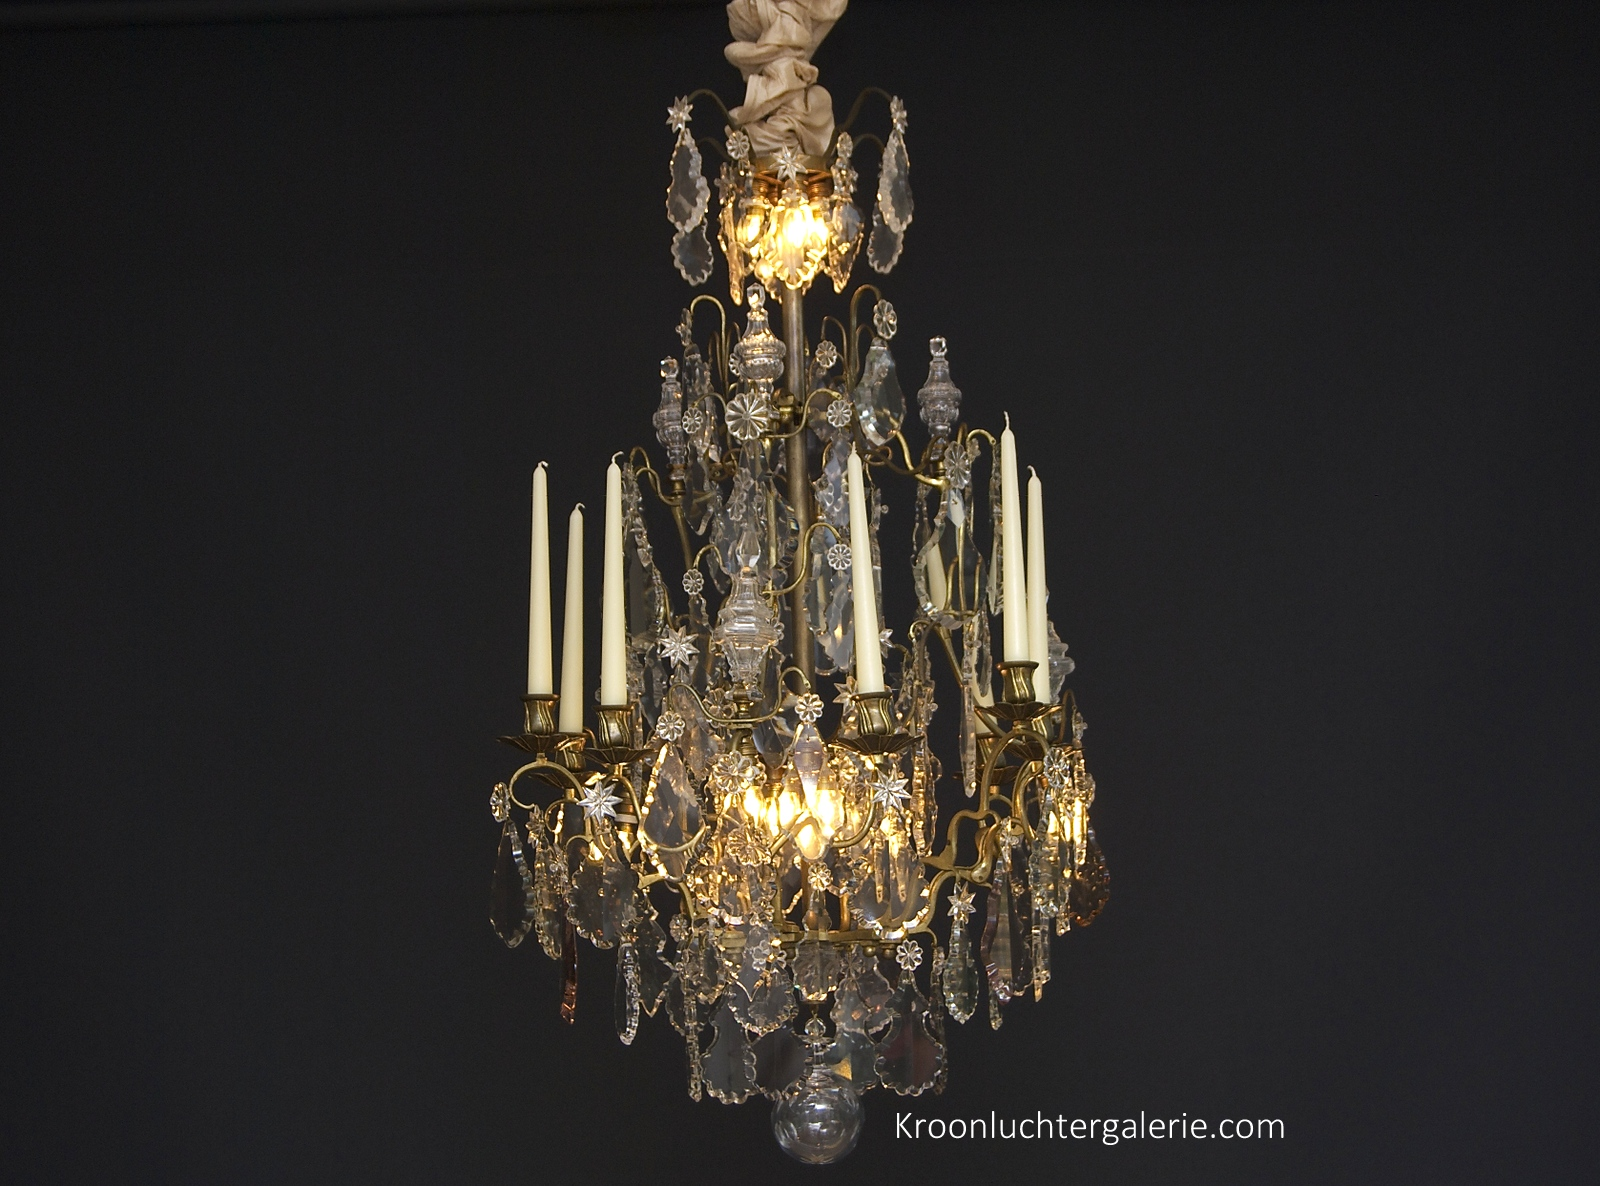 Large chandelier with candles